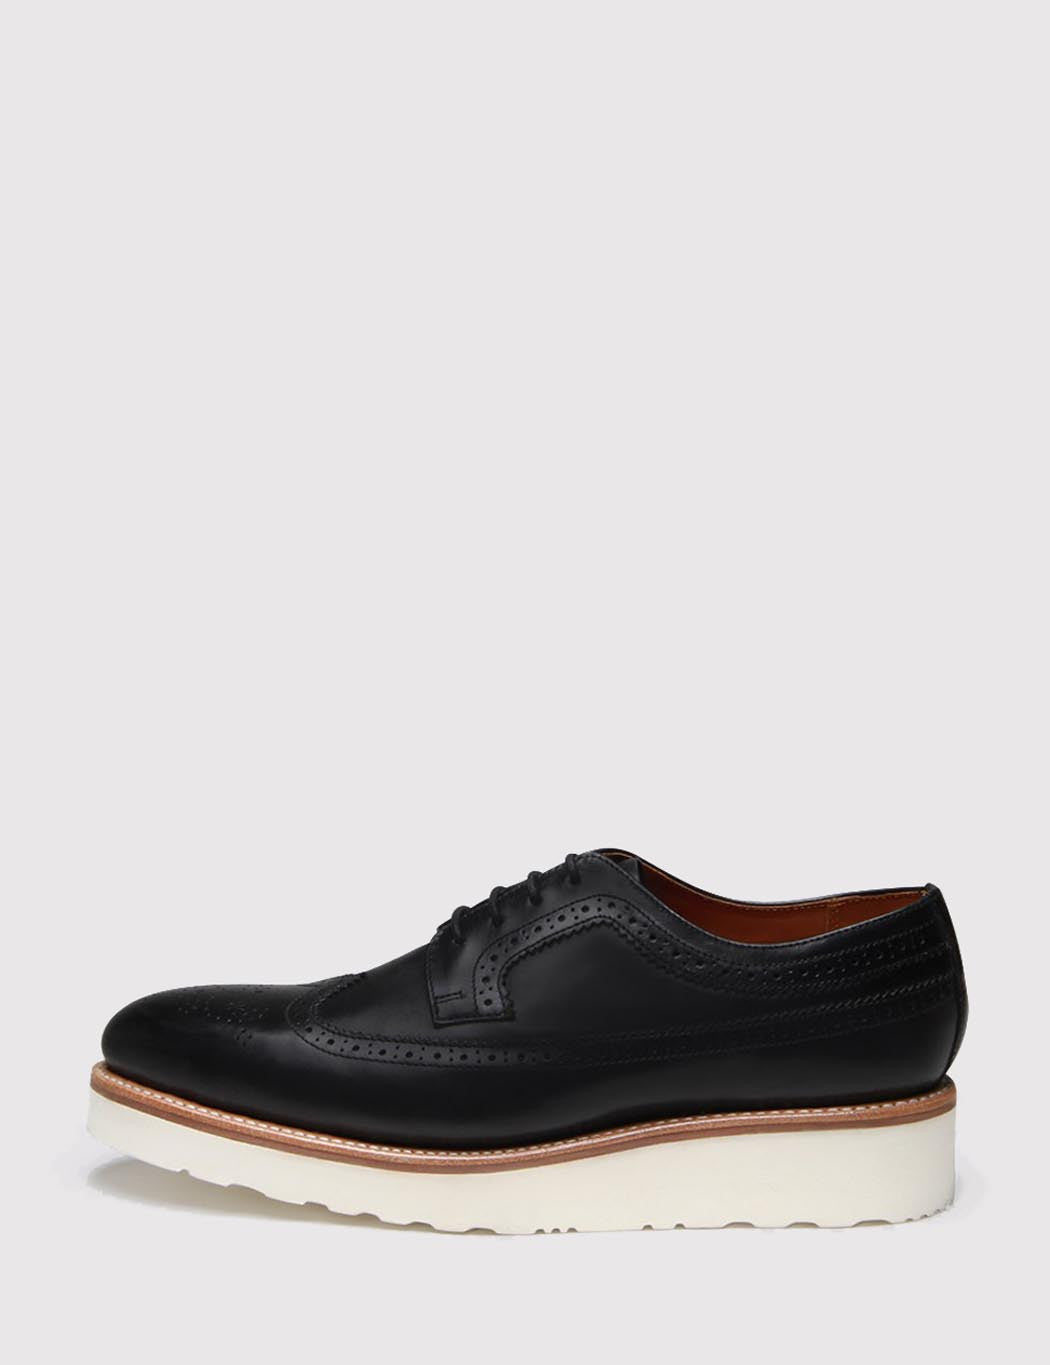 Grenson Womens Agnes Colorado Brogue Shoes - Black